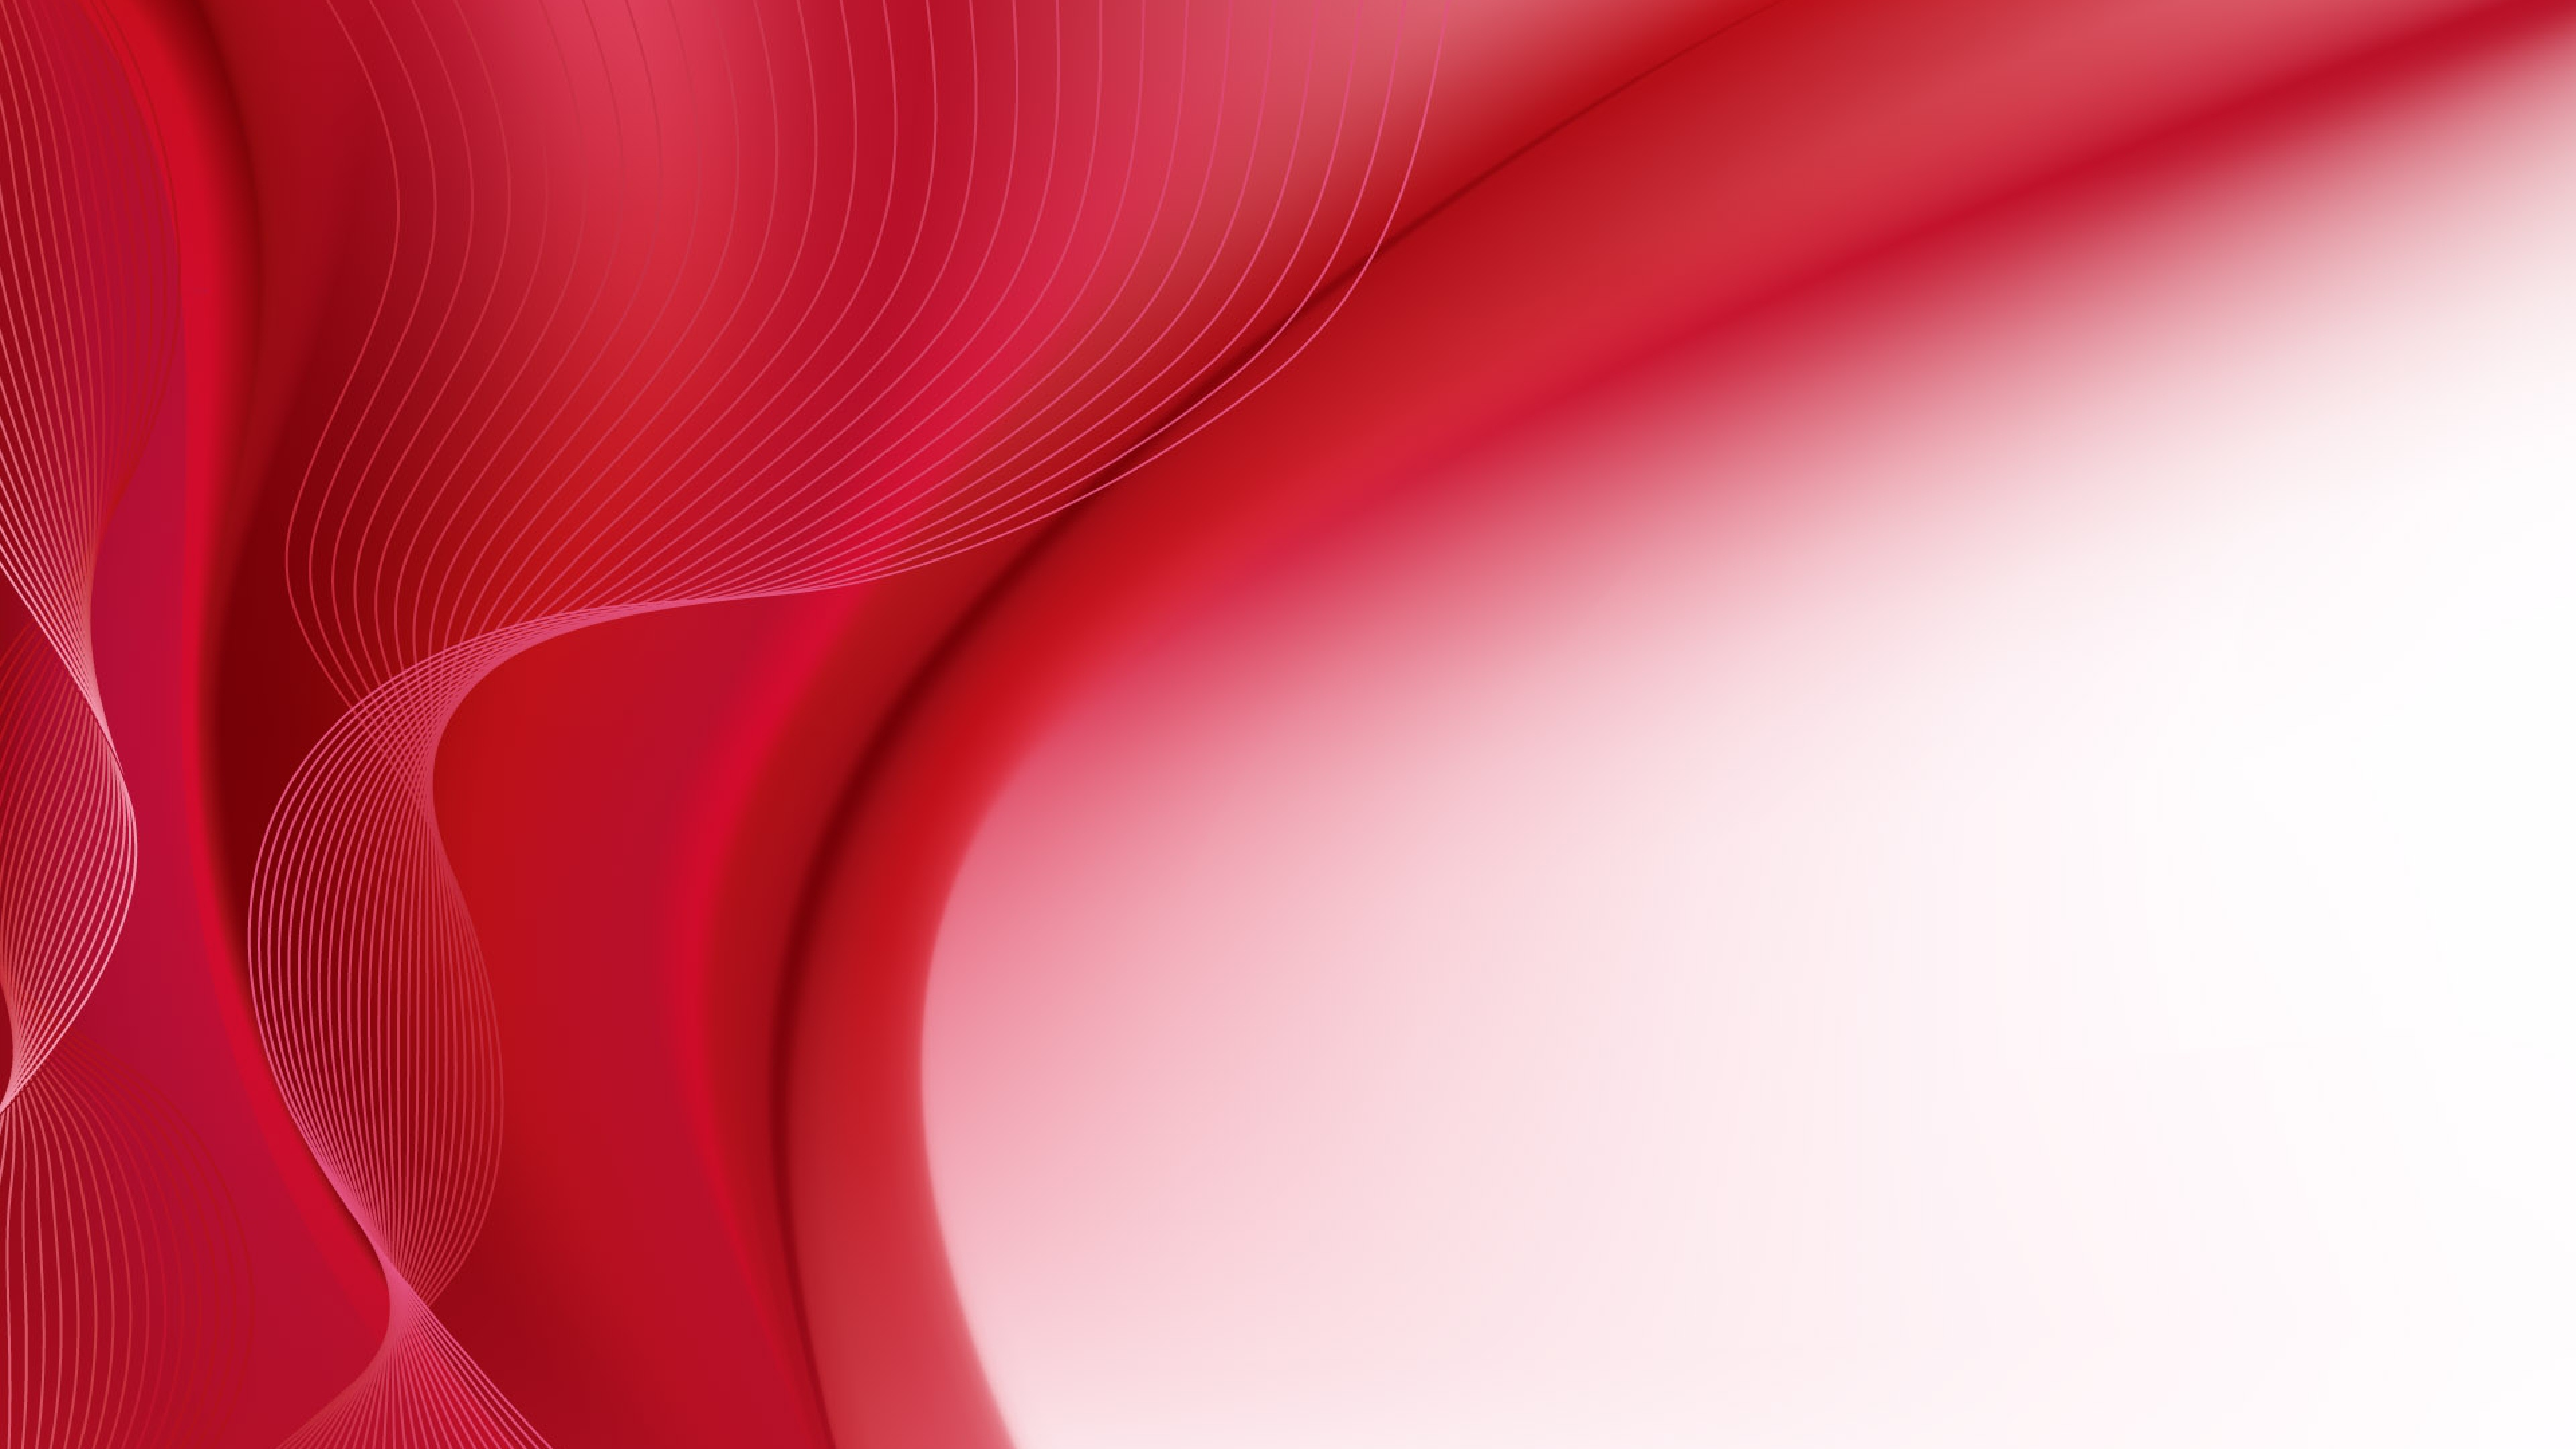 Red Wallpaper Background 3840x2160